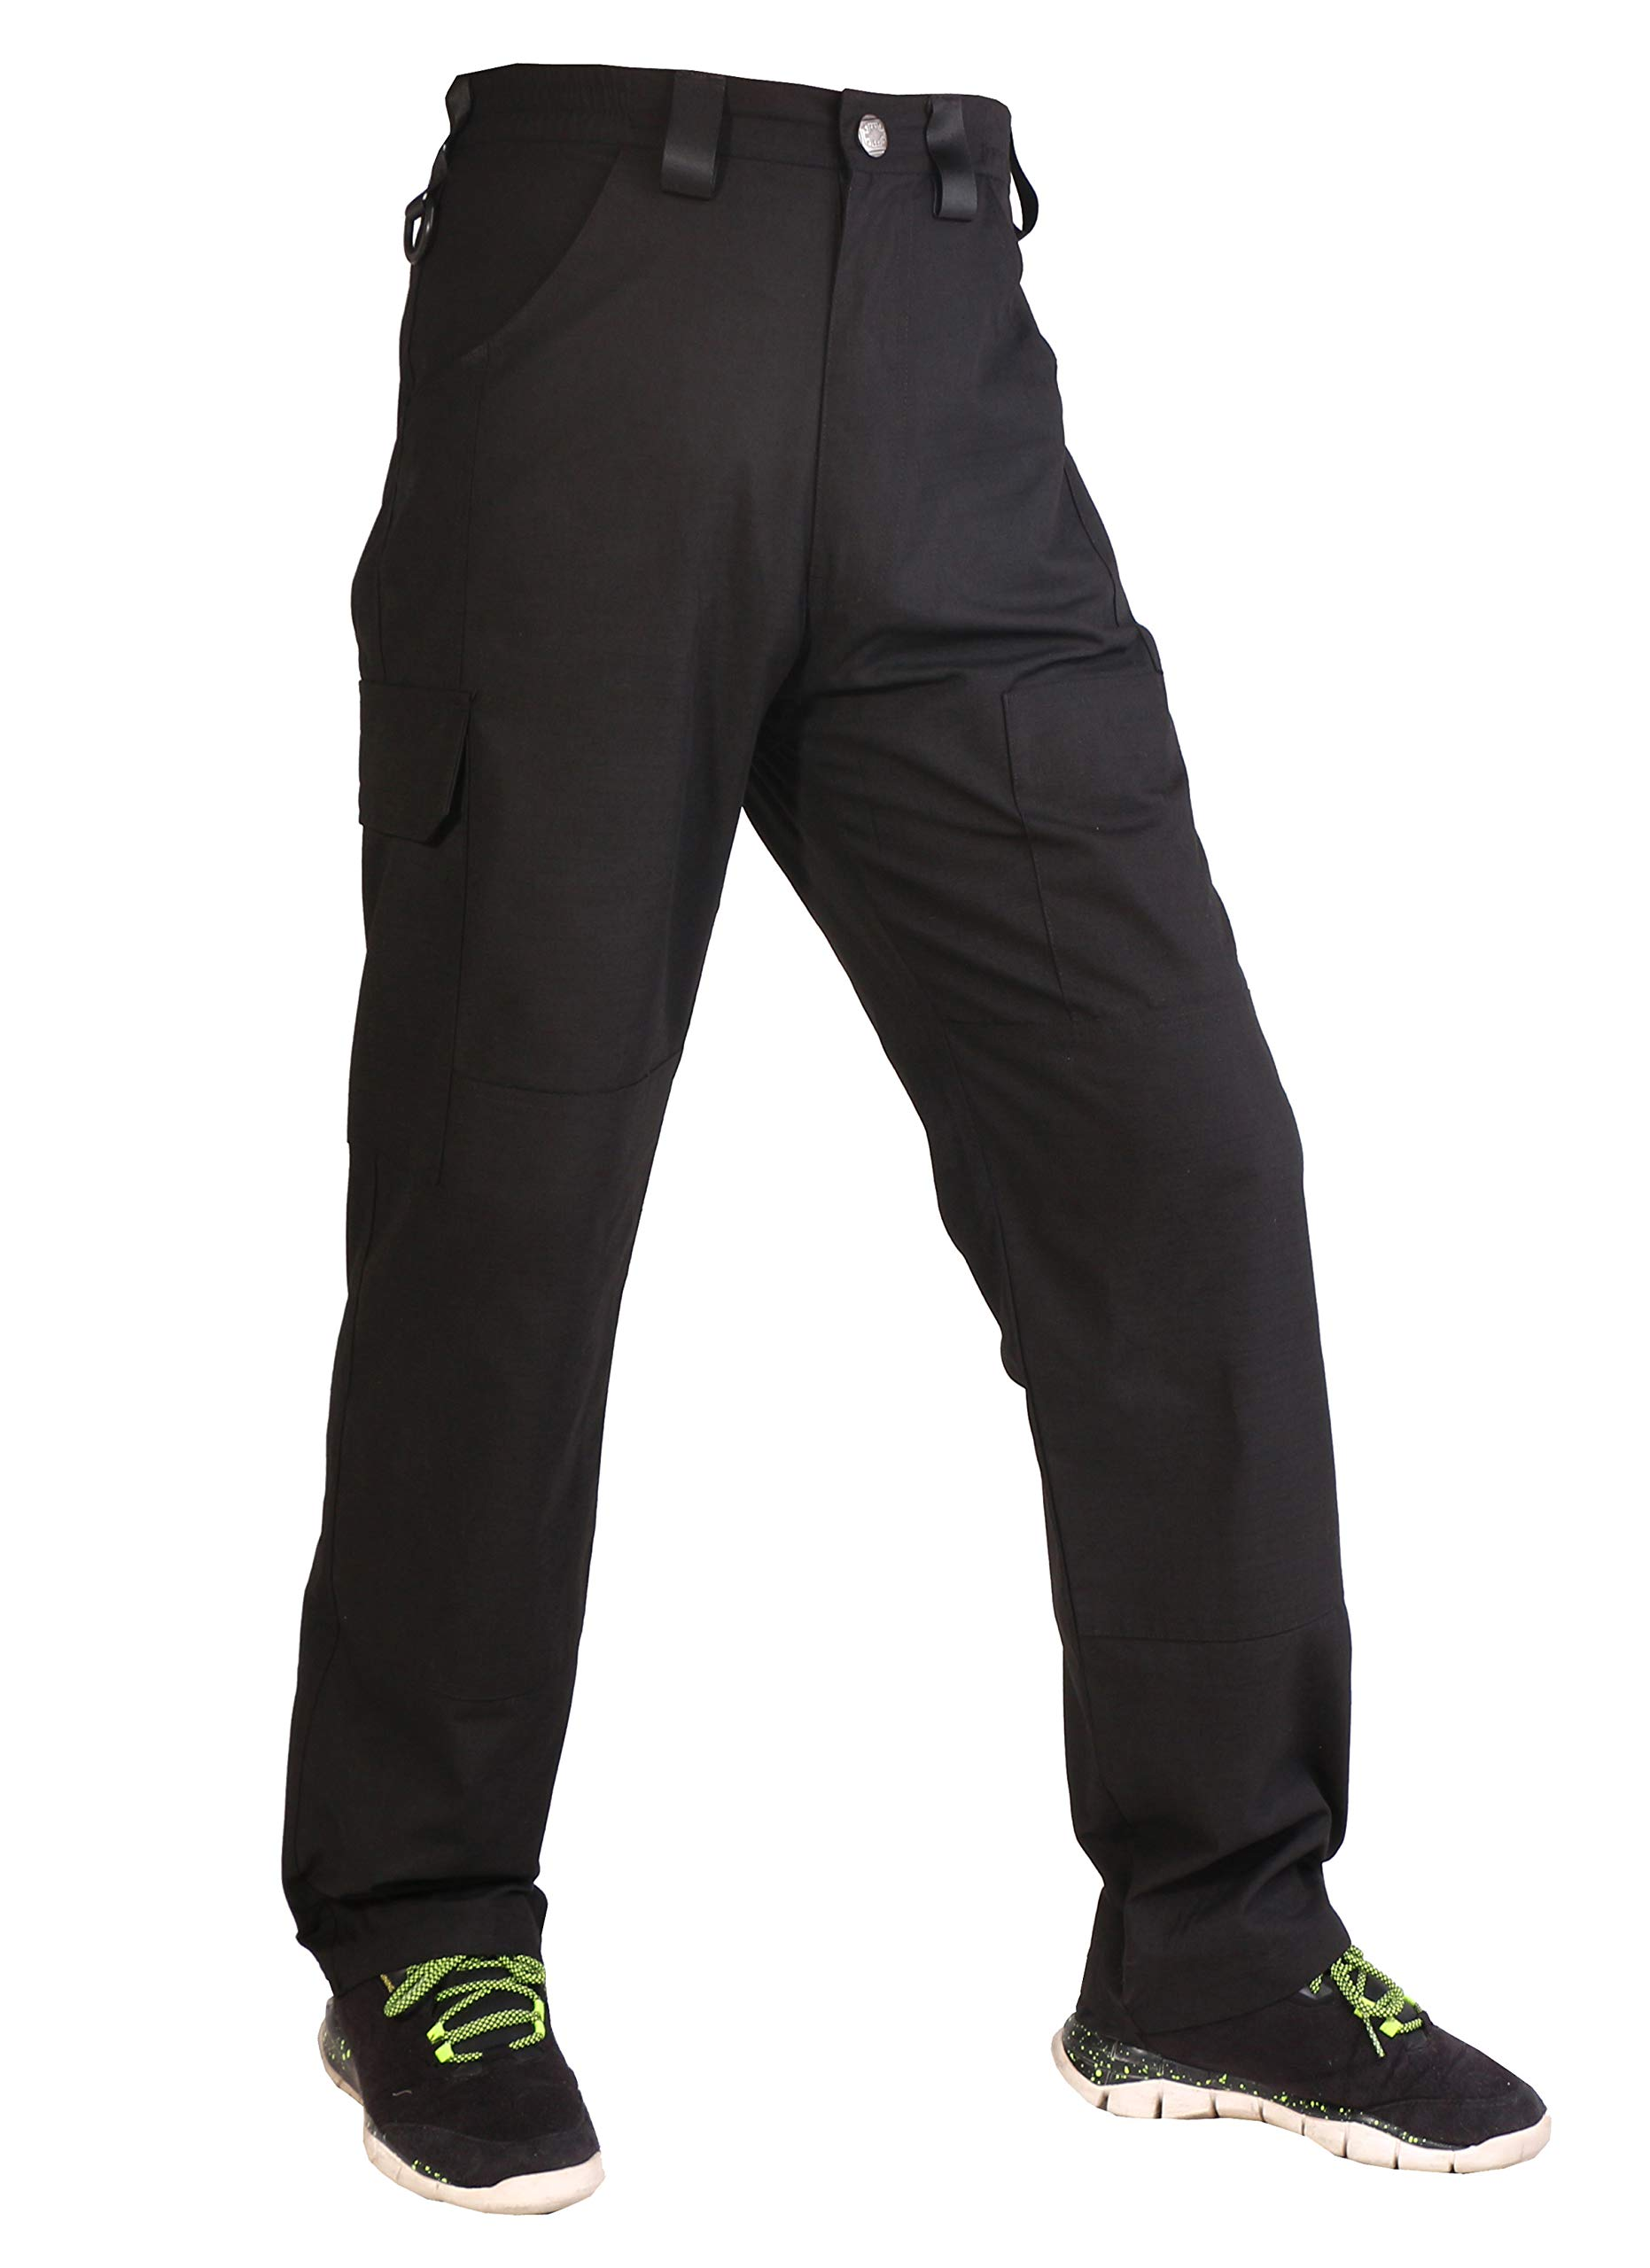 FFNIU Men's Work Pants Water Resistant Operator Cargo Trousers for Four Seasons